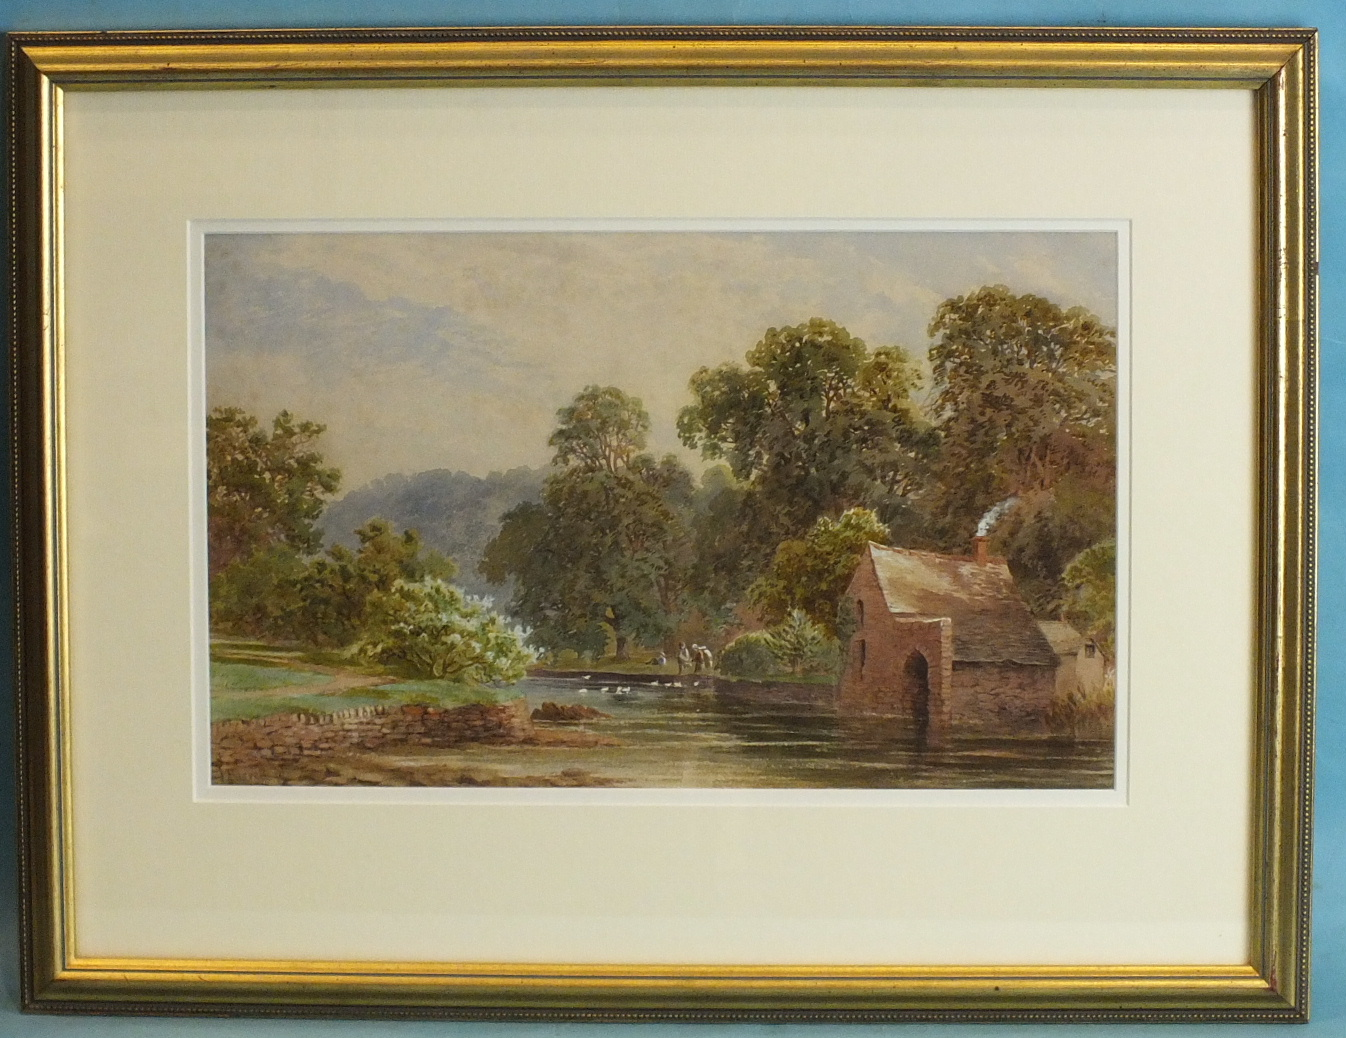 Lot 87 - J Barrett THE BOATHOUSE, RADFORD WOODS, PLYMSTOCK Watercolour, signed and dated '80, 24.5 x 39.